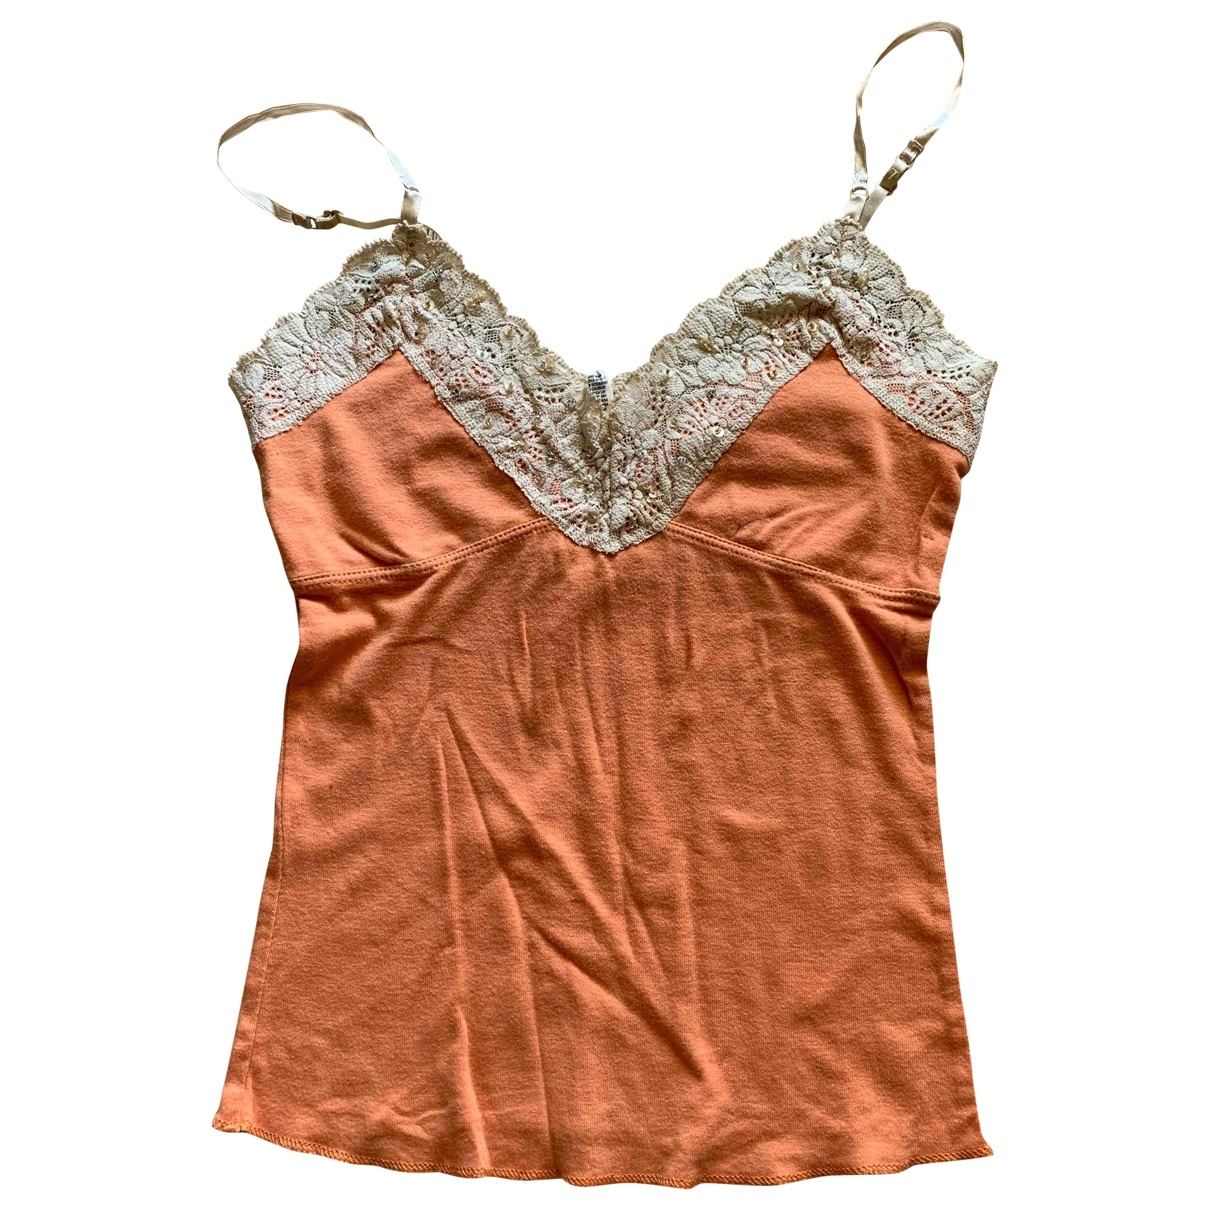 Abercrombie & Fitch \N Orange Cotton  top for Women S International